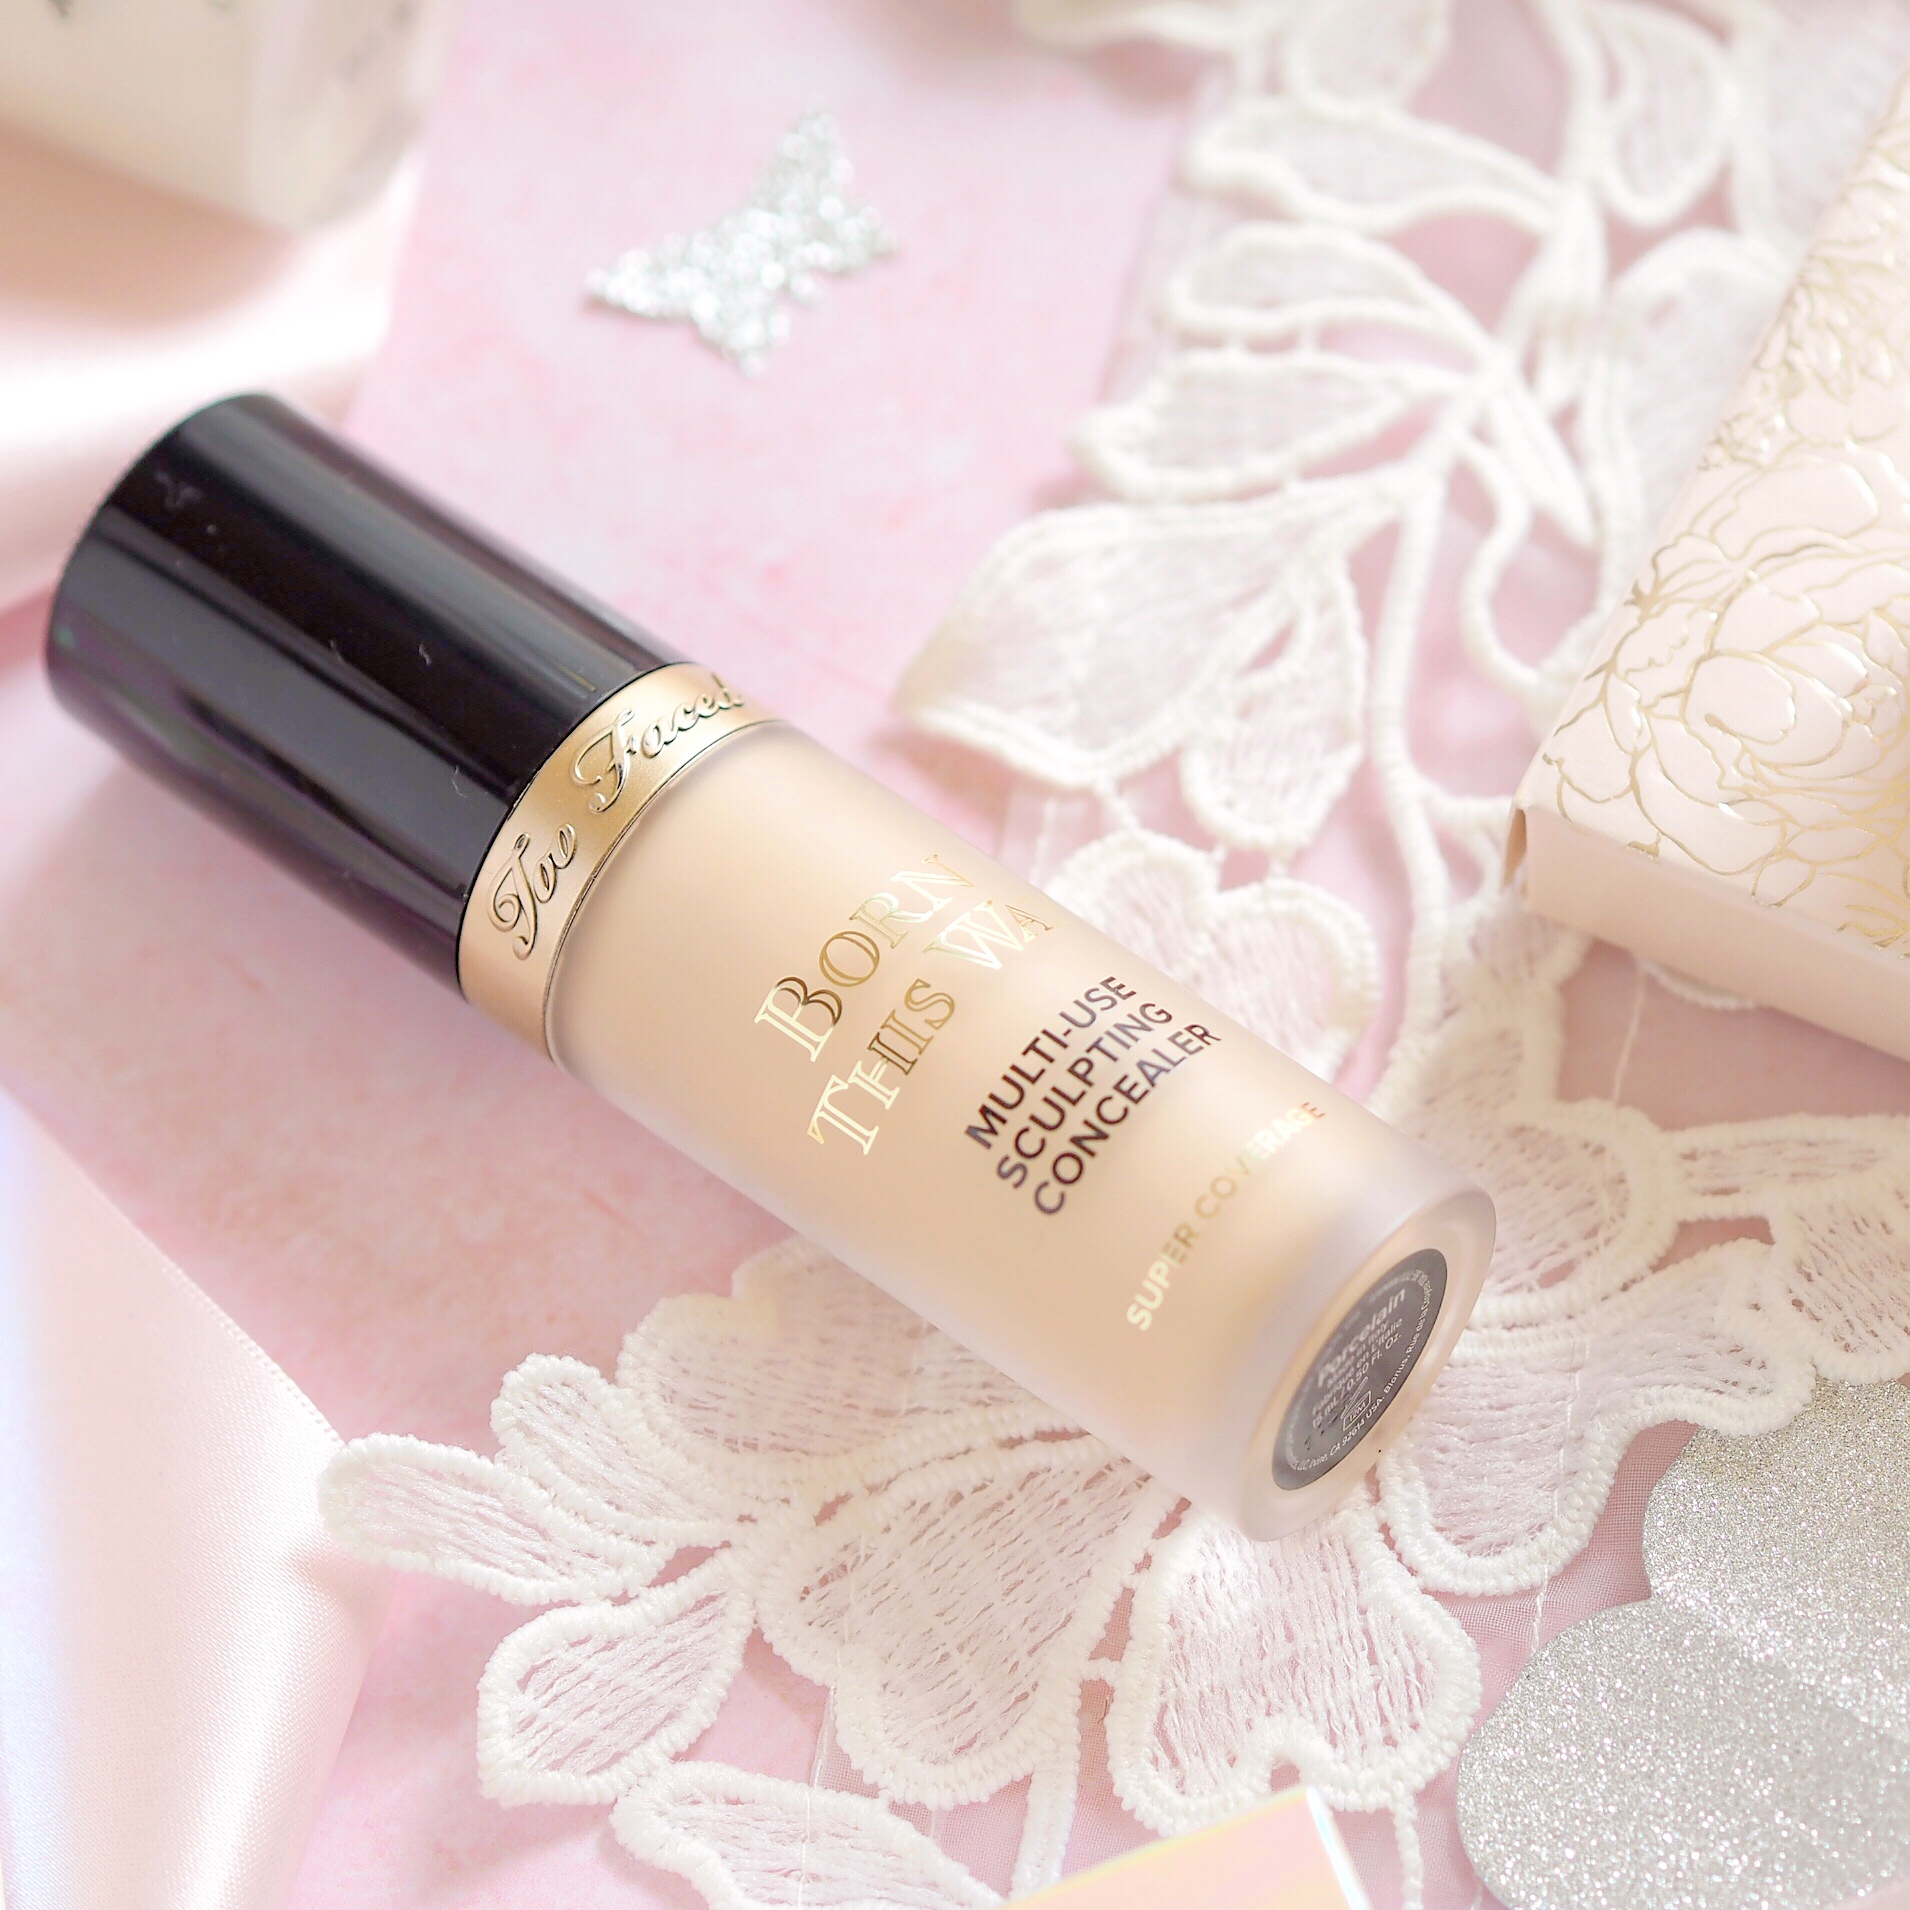 Too Faced Born This Way Sculpting Concealer | 7 Pretty New Products In My Beauty Drawers